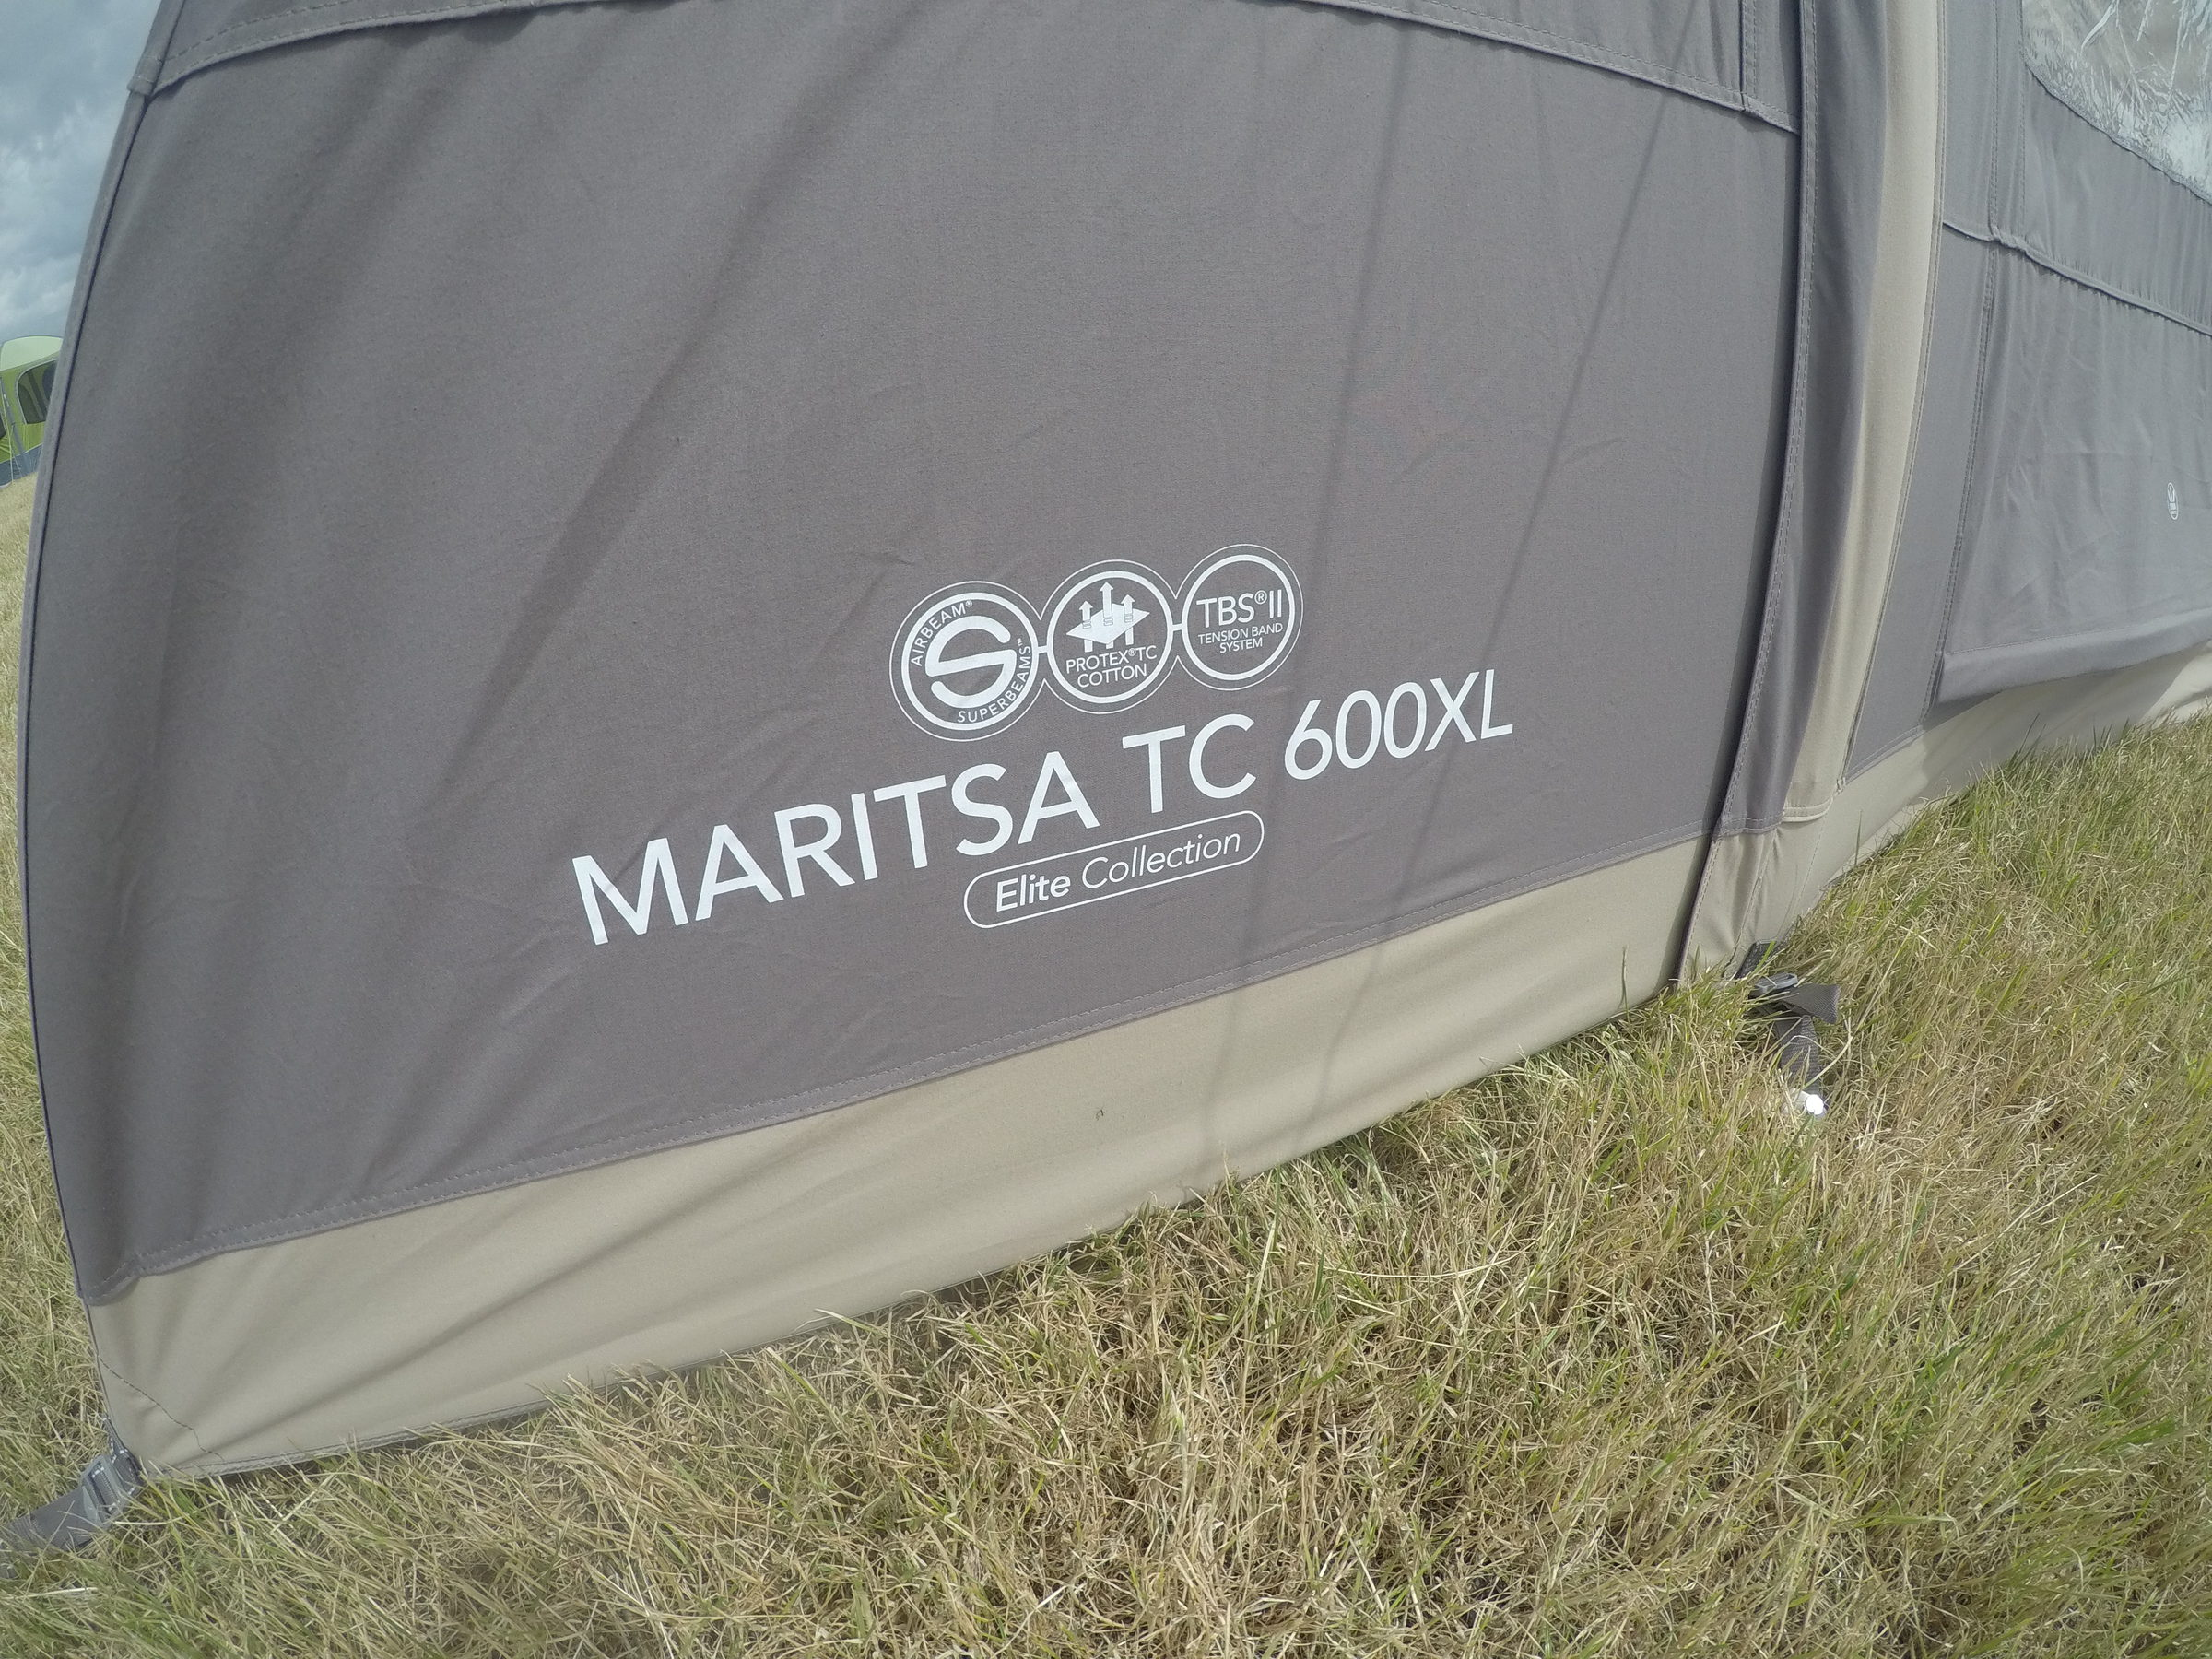 Vango Maritsa Tc 600Xl Airbeam Tent 20181